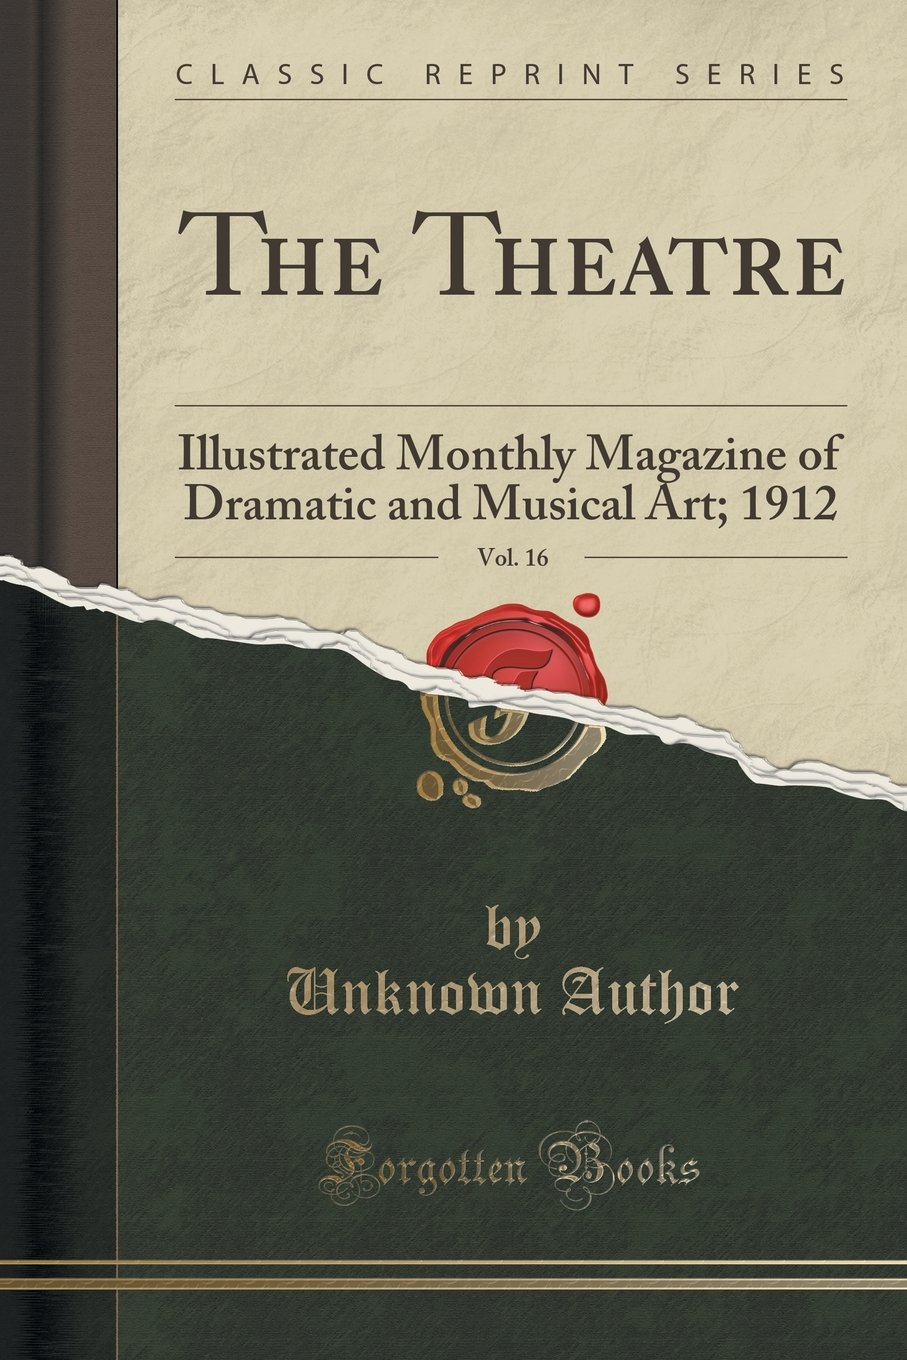 The Theatre, Vol. 16: Illustrated Monthly Magazine of Dramatic and Musical Art; 1912 (Classic Reprint) ebook